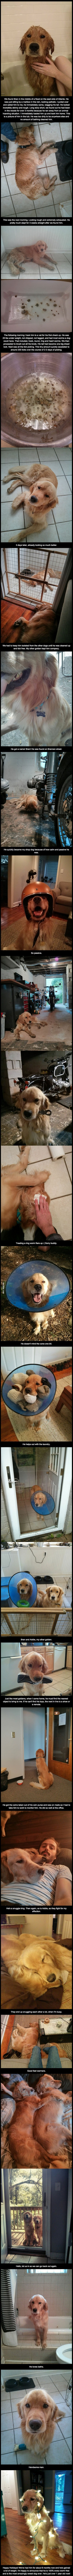 I rescued a golden retriever this past summer who was just hanging out in the wilds of Atlanta.